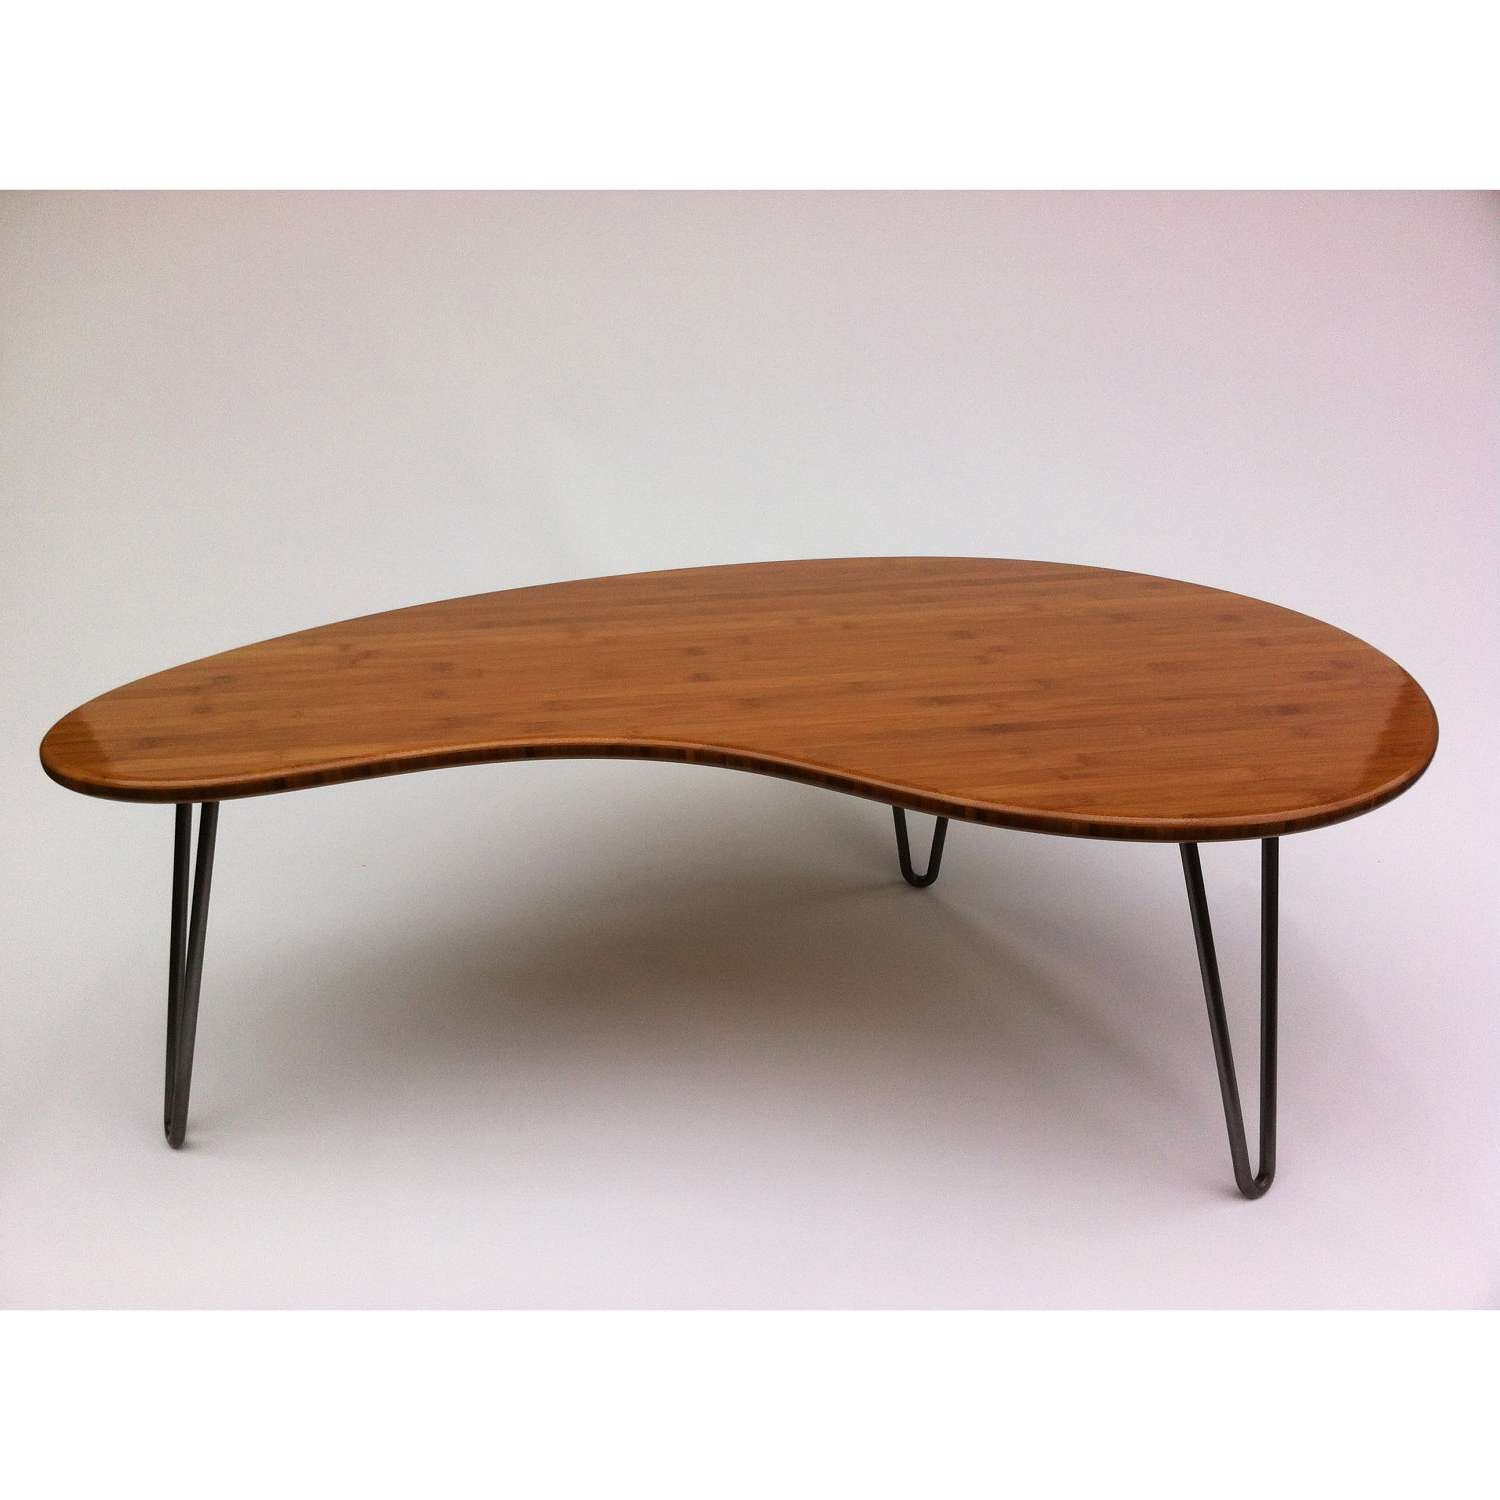 Widely Used Oval Black Glass Coffee Tables With Coffee Table : Marvelous Triangle Table Oval Coffee Table Triangle (View 20 of 20)